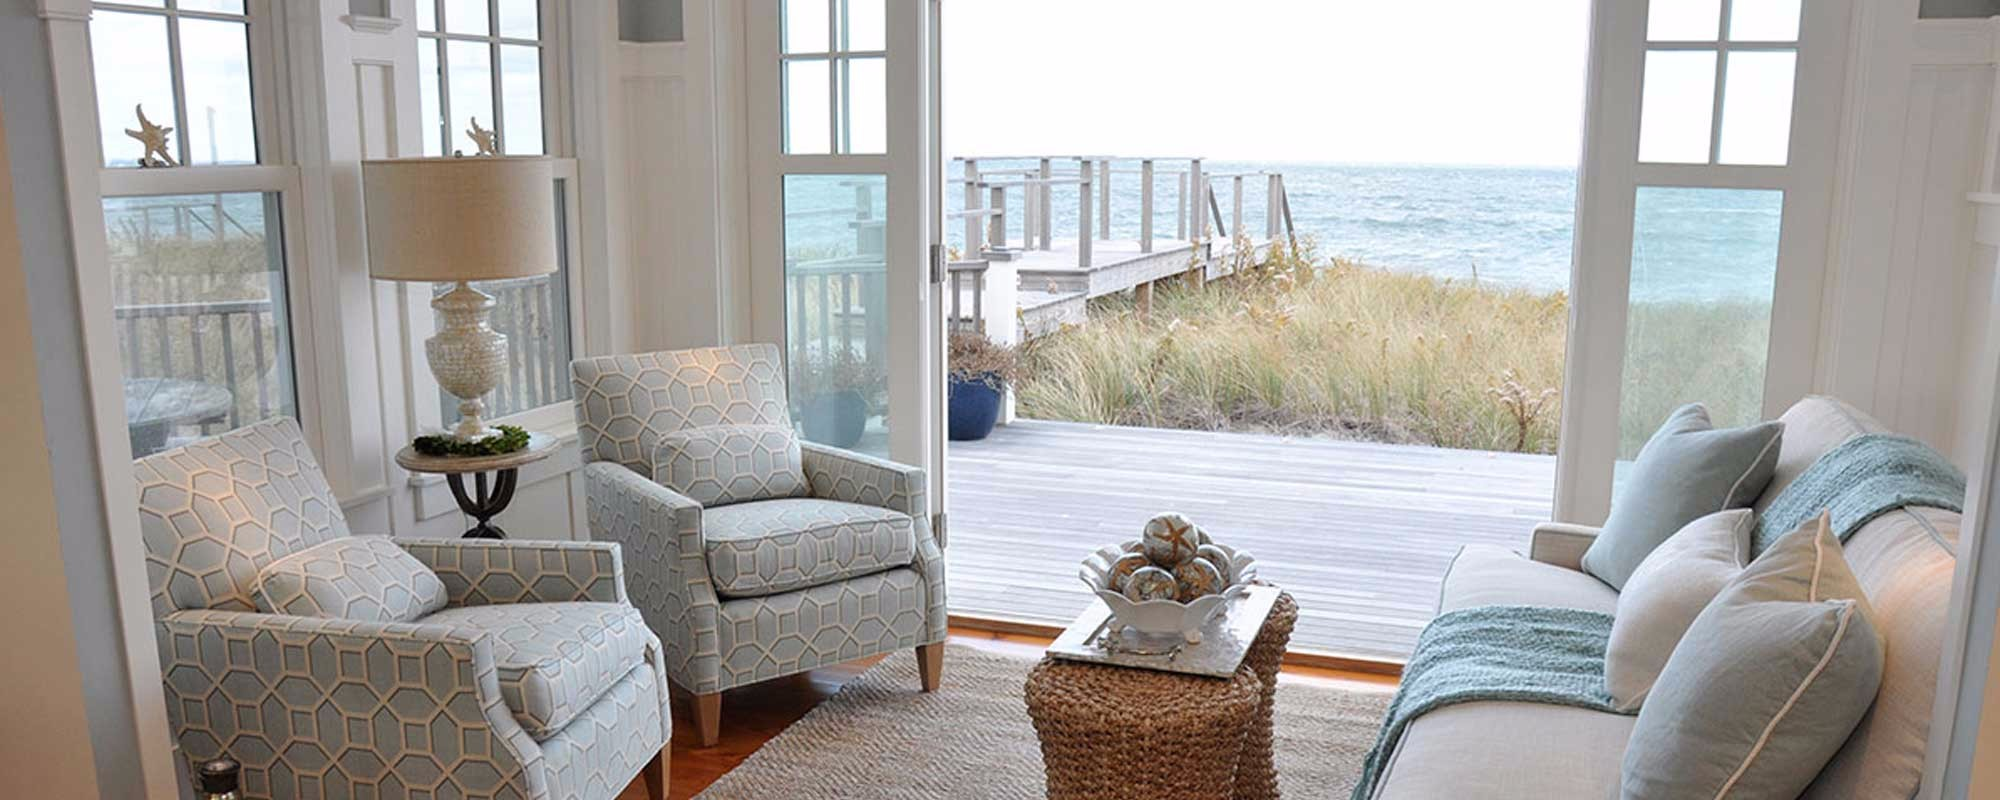 Interior design cape cod ma casabella interiors for Internal home decoration